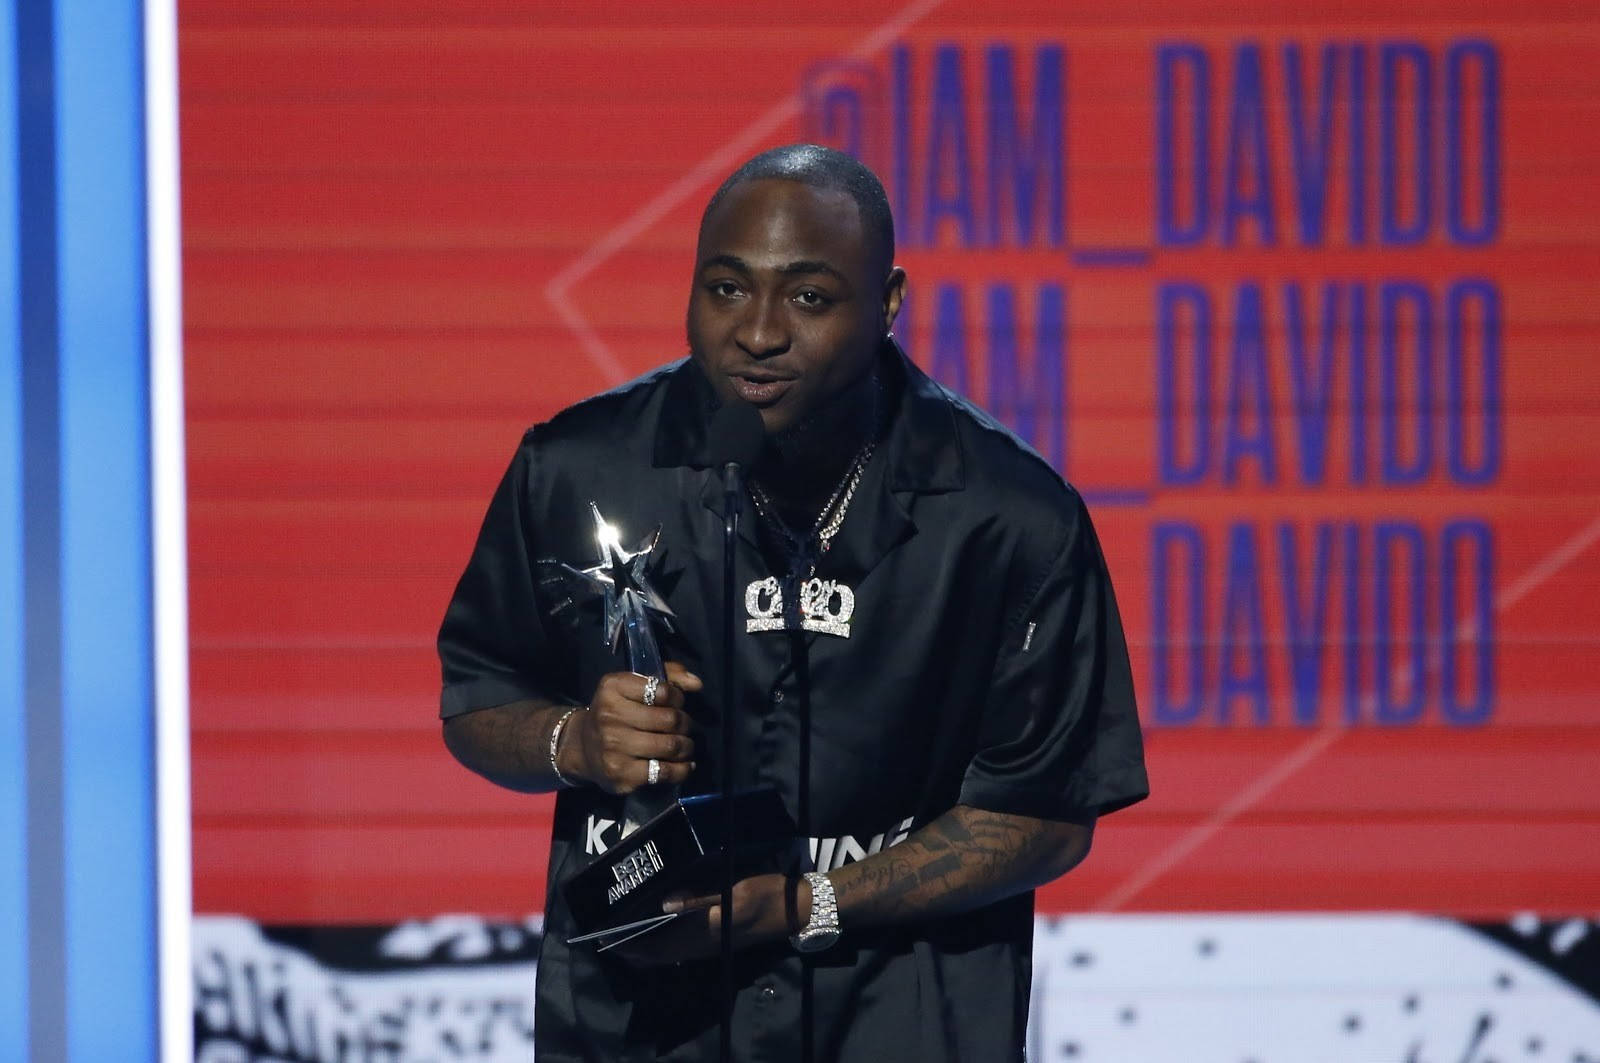 2018 BET Awards - Show  - Los Angeles, California, U.S., 24/06/2018 - Davido, from Nigeria, accepts the award for Best International Act. REUTERS/Mario Anzuoni - HP1EE6P054MOW